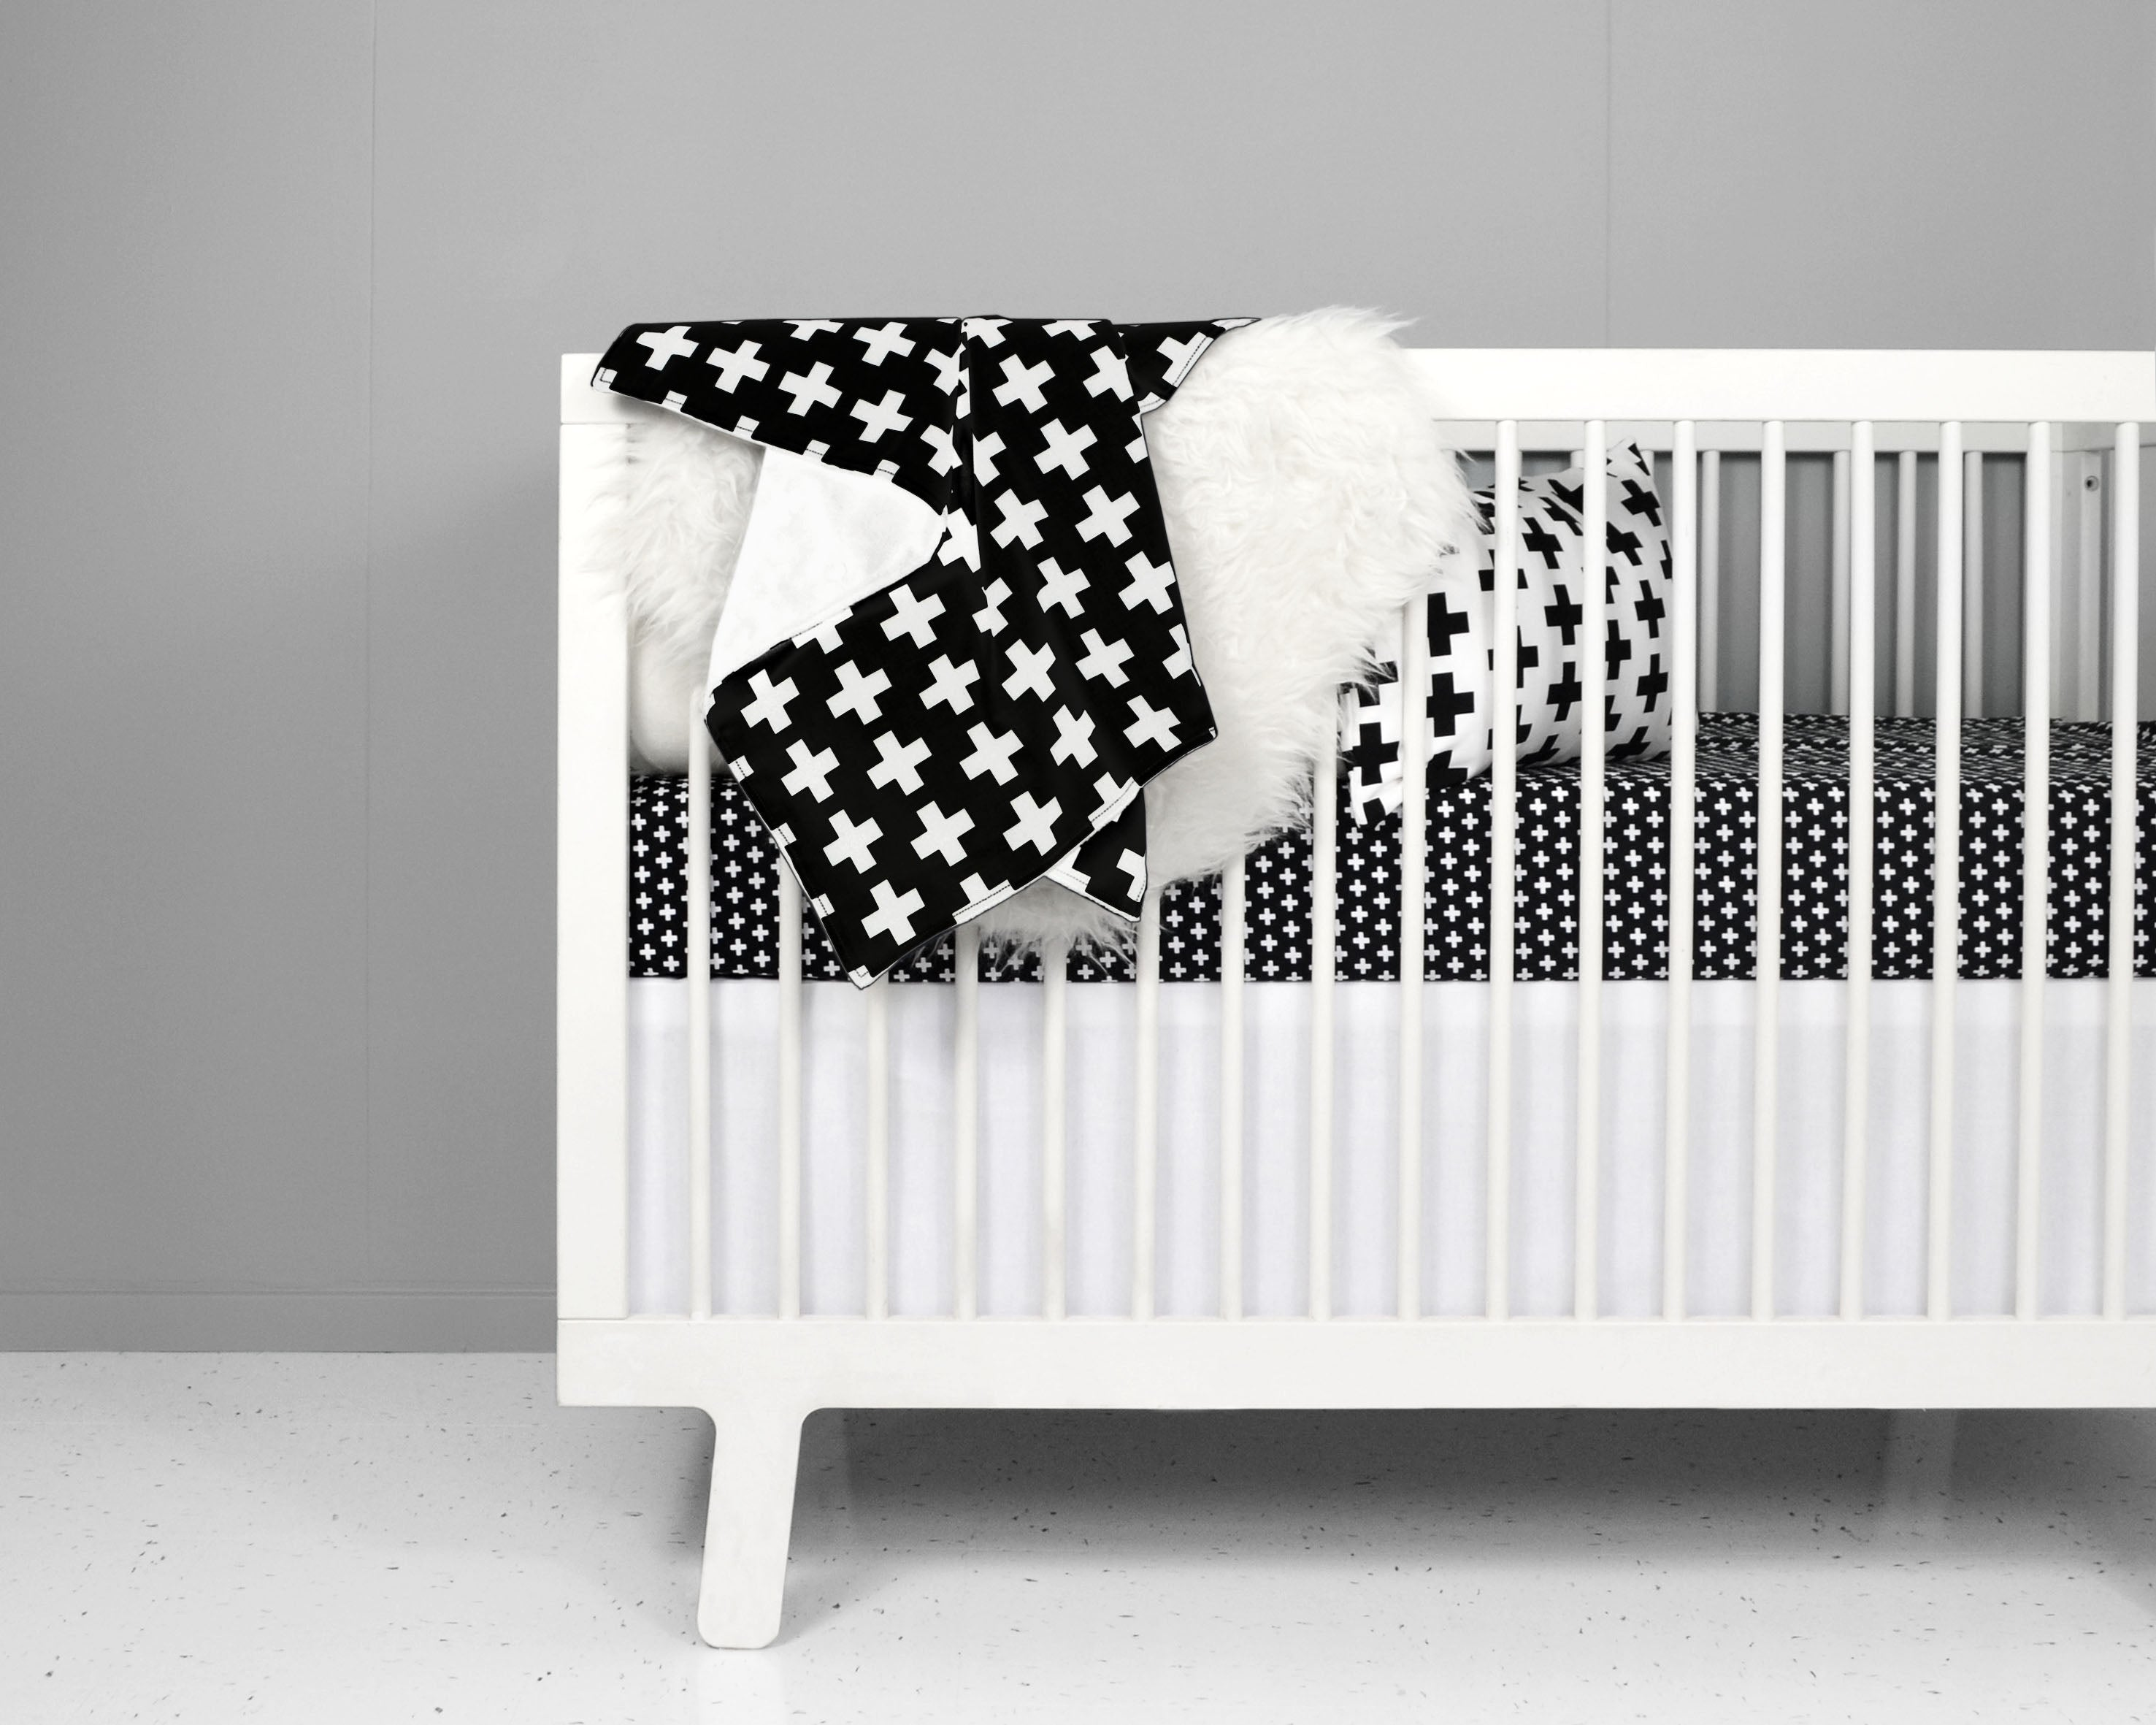 Nordic Cross Crib Sheet Black - Leo + Cullie